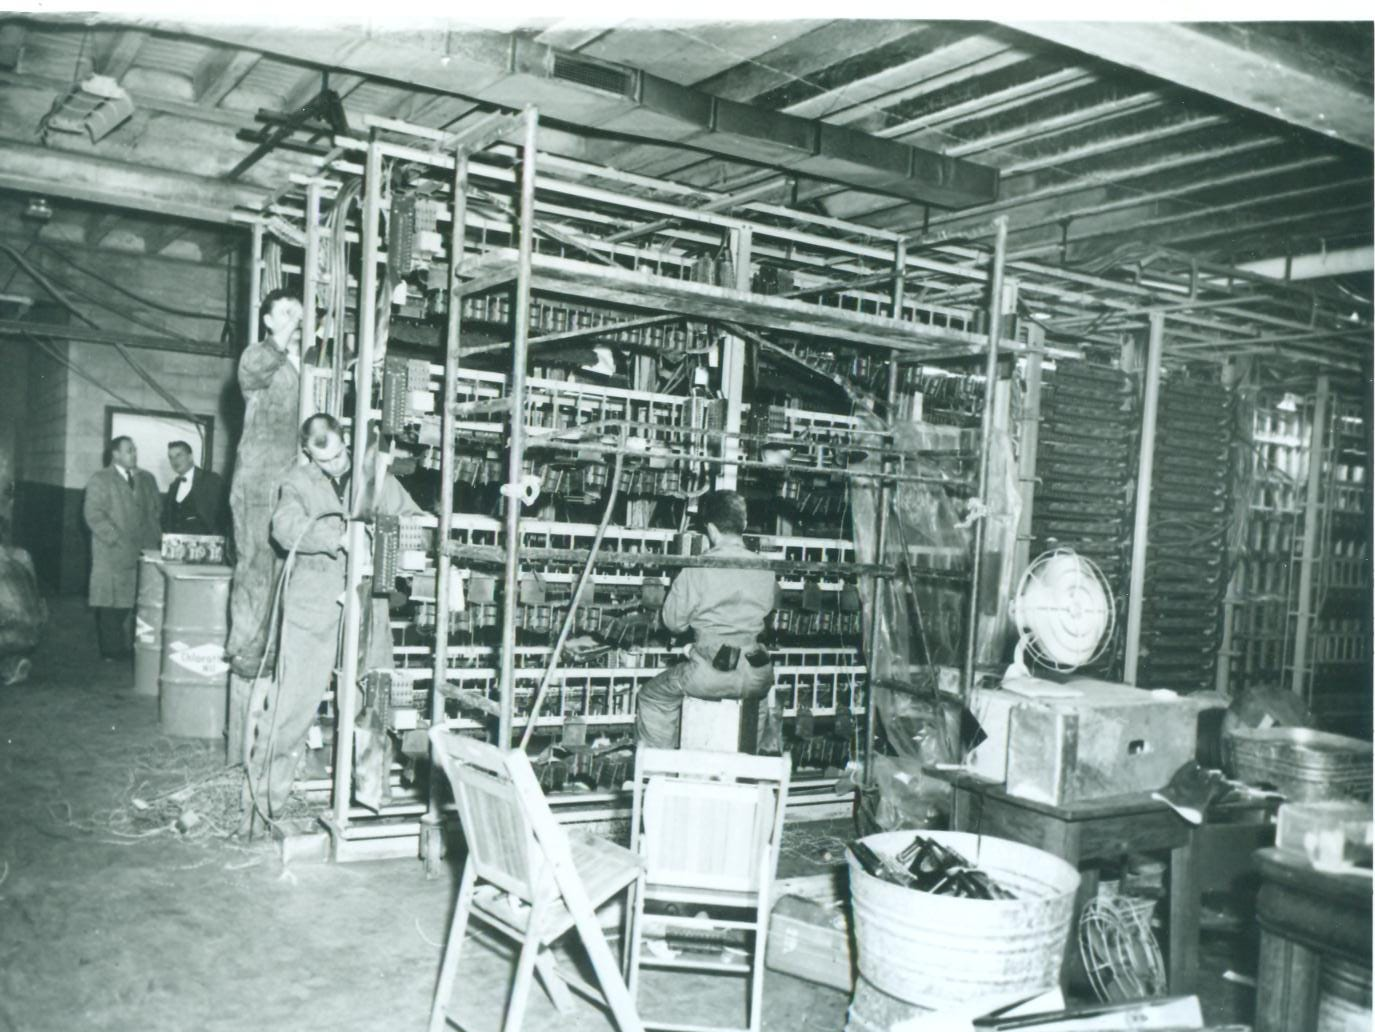 General Telephone crews began the arduous task of splicing ruined cables and trunk connections together in February 1965 after the worst communications blackout in Indiana history.